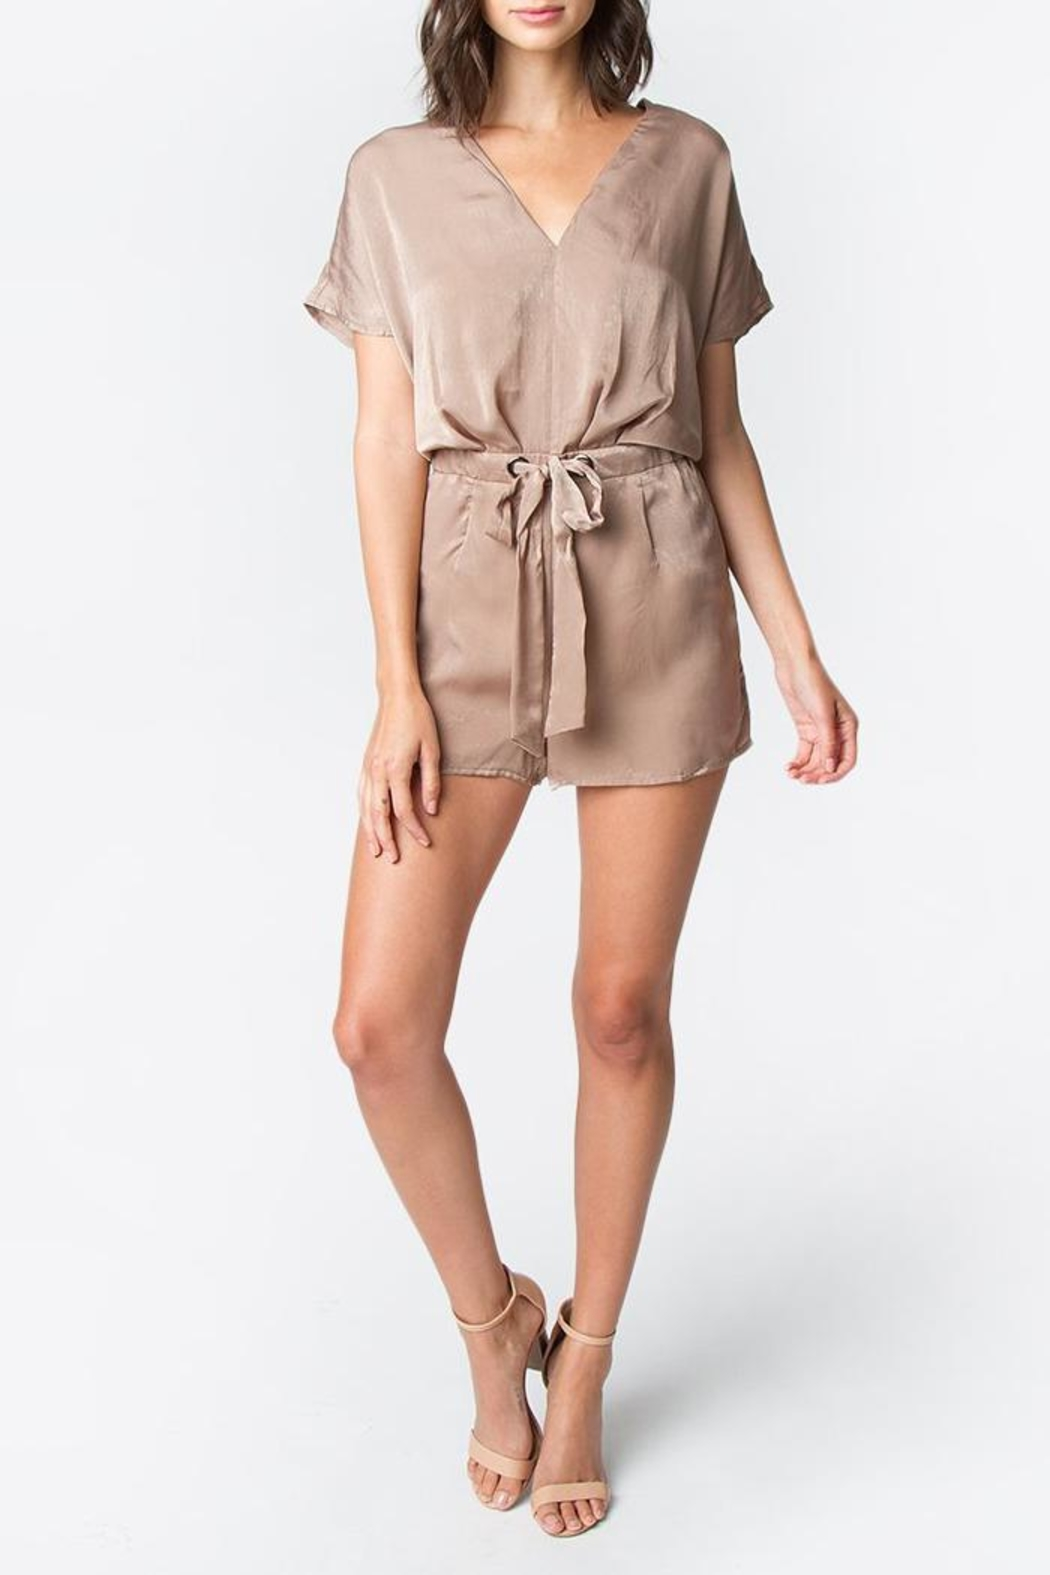 b3e5f53d075 Sugar Lips Taupe Satin Romper from New York by Luna — Shoptiques